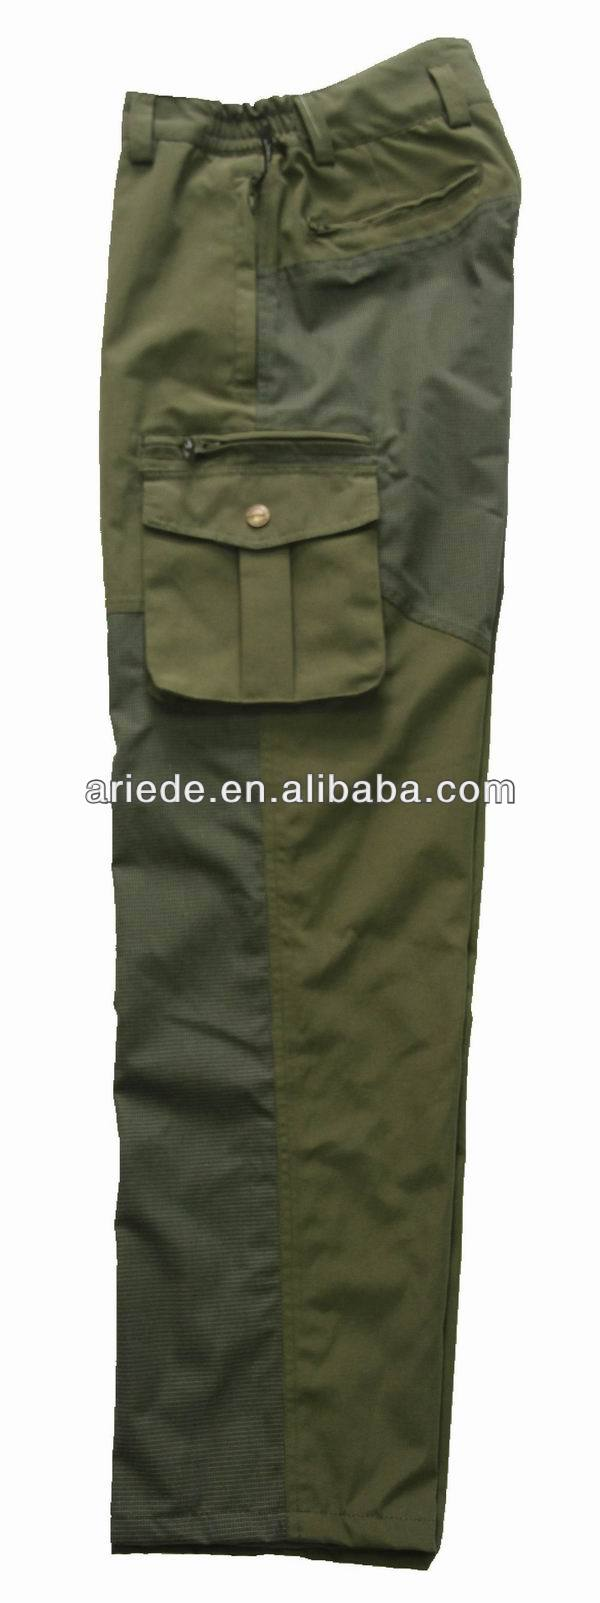 men's waterproof hunting pants